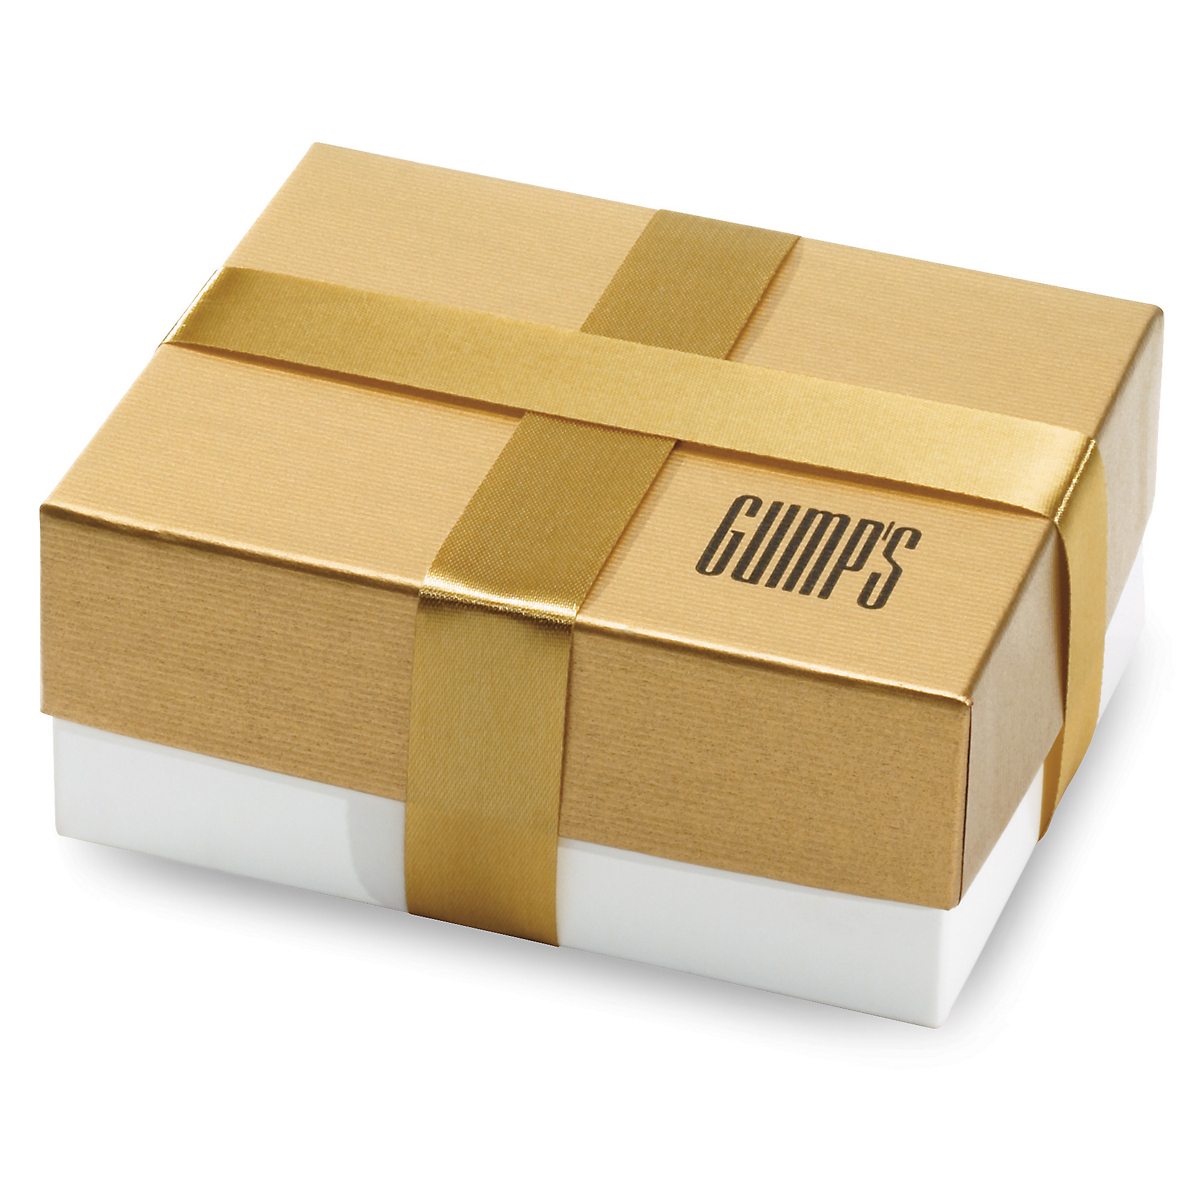 Special gold gift box gump s